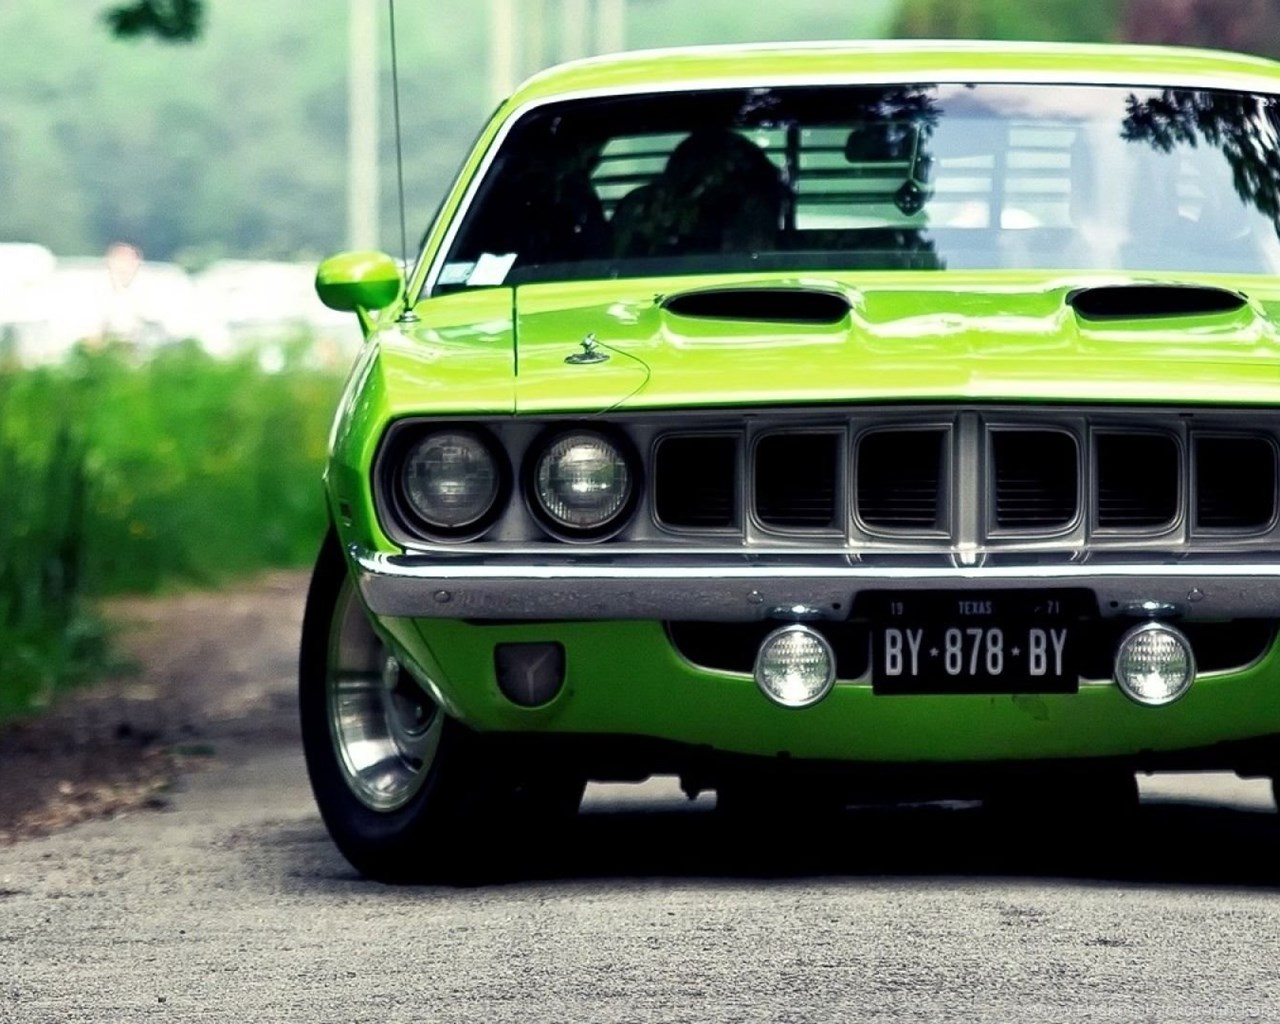 Hd Quality Best Muscle Car Wallpapers Hd 16 Siwallpapers 7239